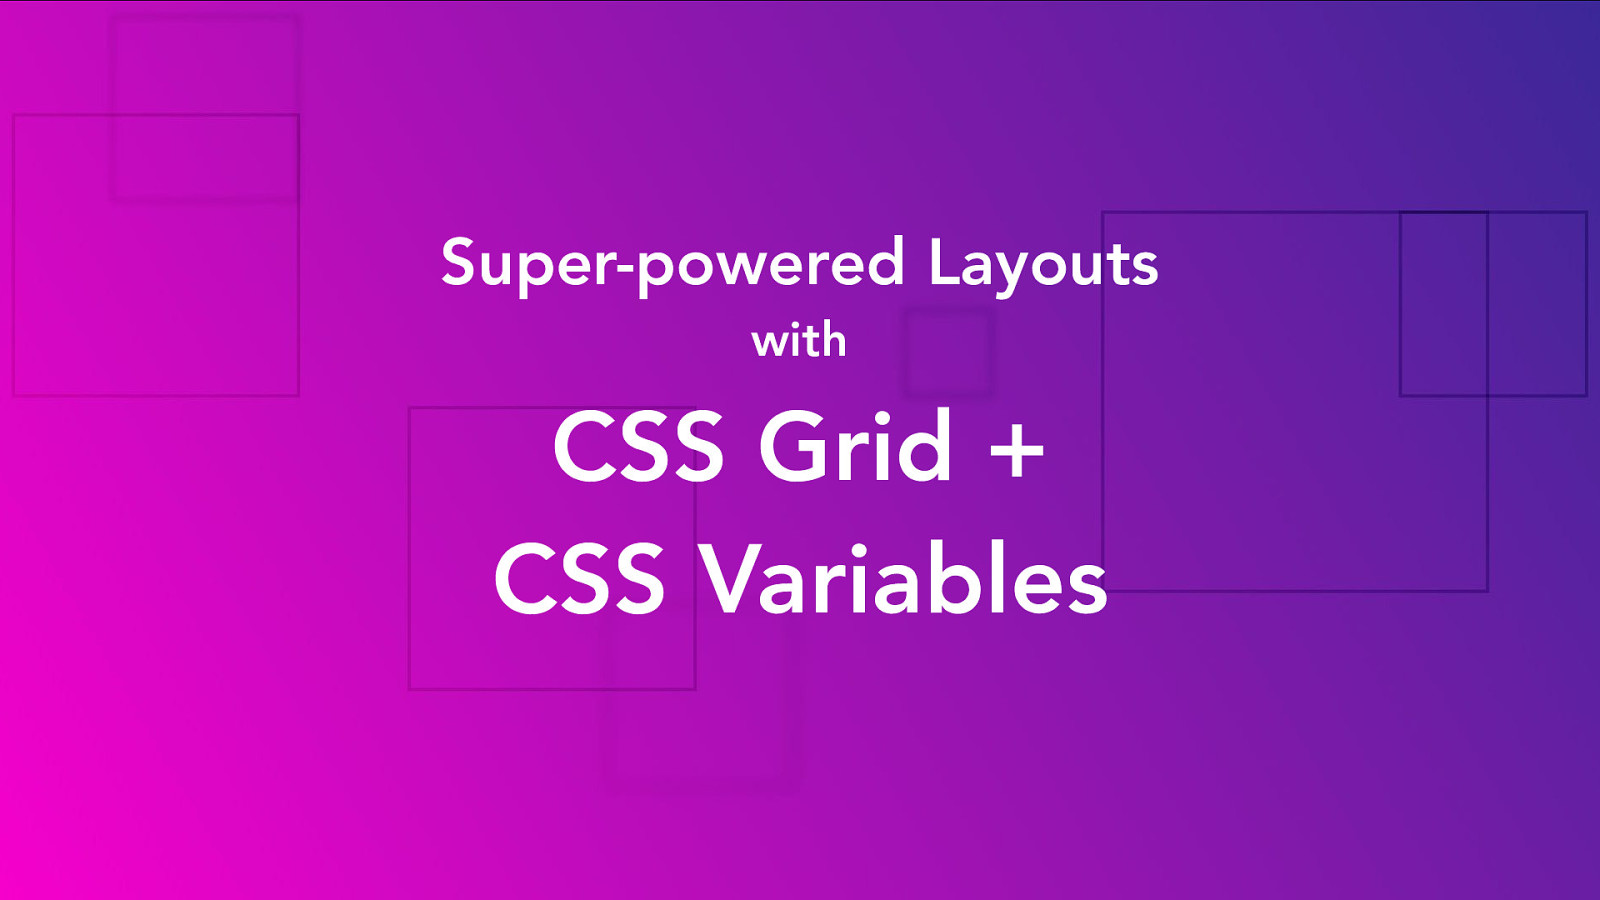 Super-powered Layouts with CSS Grid and CSS Variables